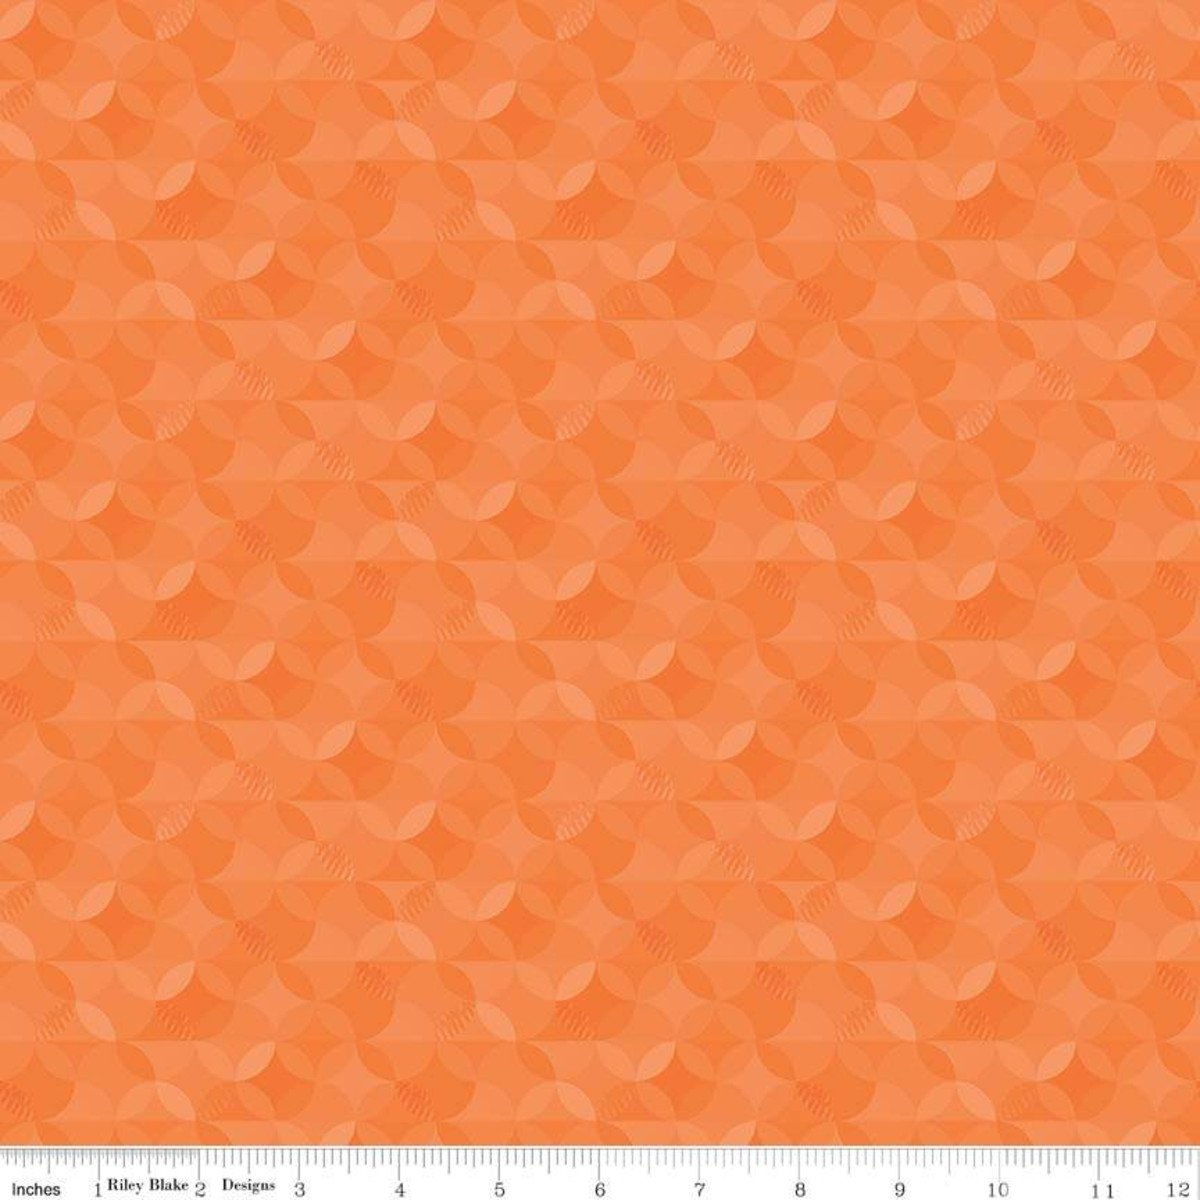 Crayola™ Kaleidoscope Outrageous Orange CR480